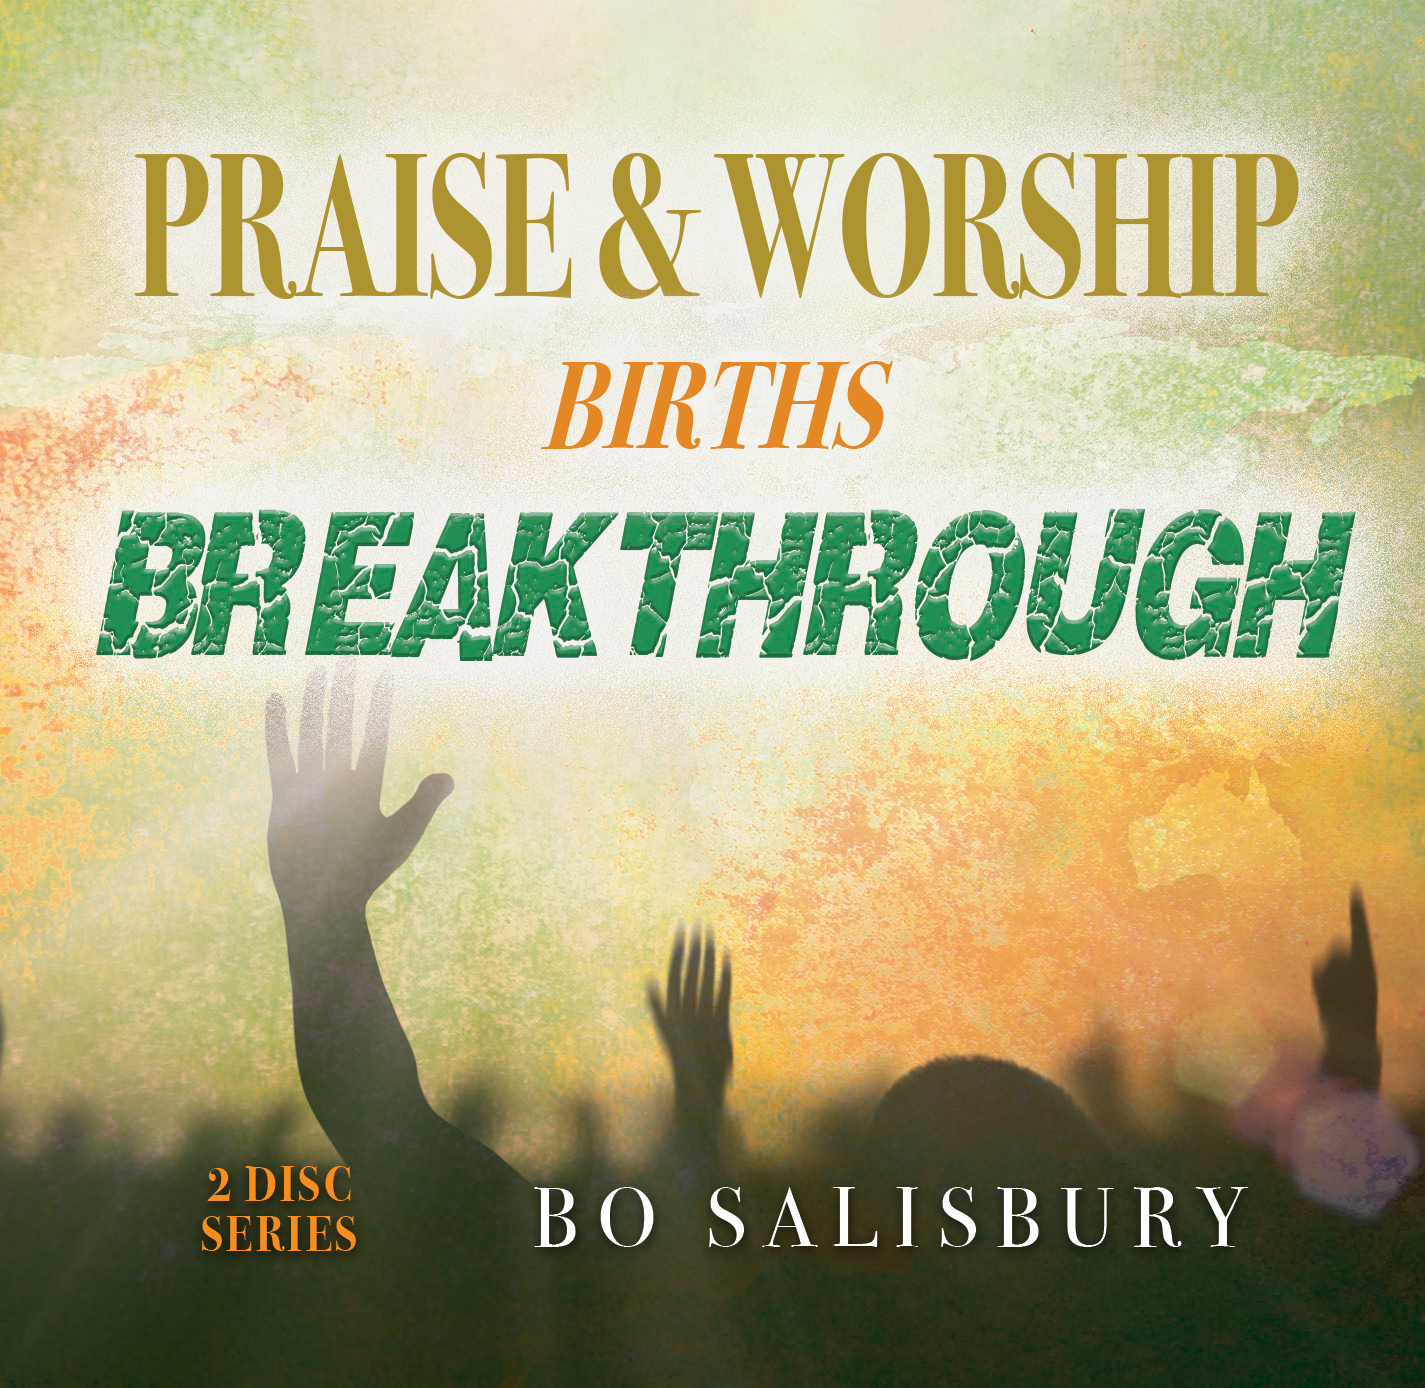 Praise & Worship Births Breakthrough 4816